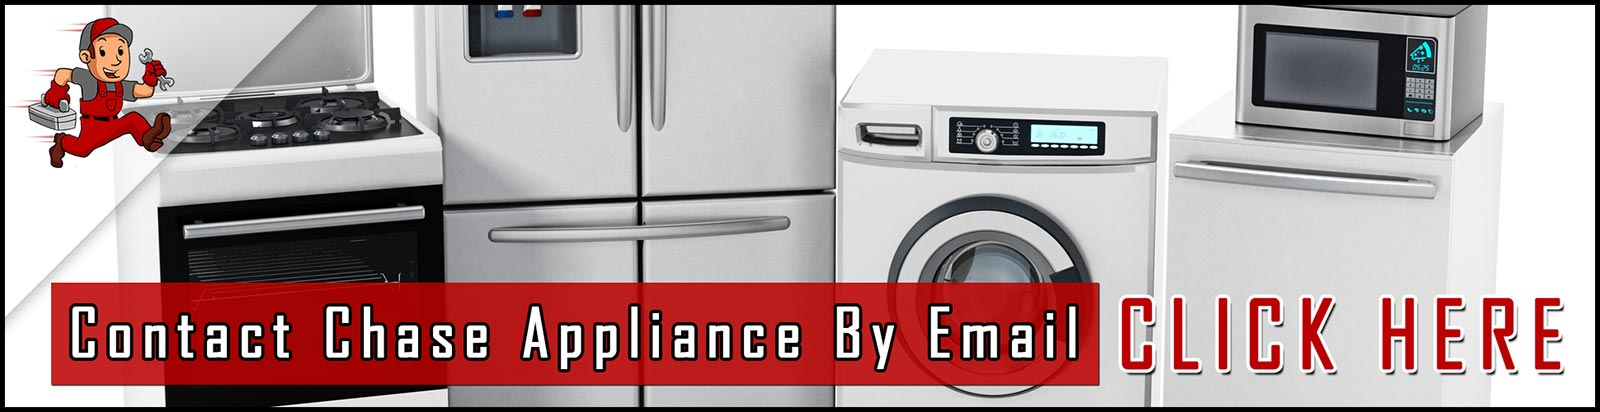 Residential Refrigerator Repair And Service In Northern